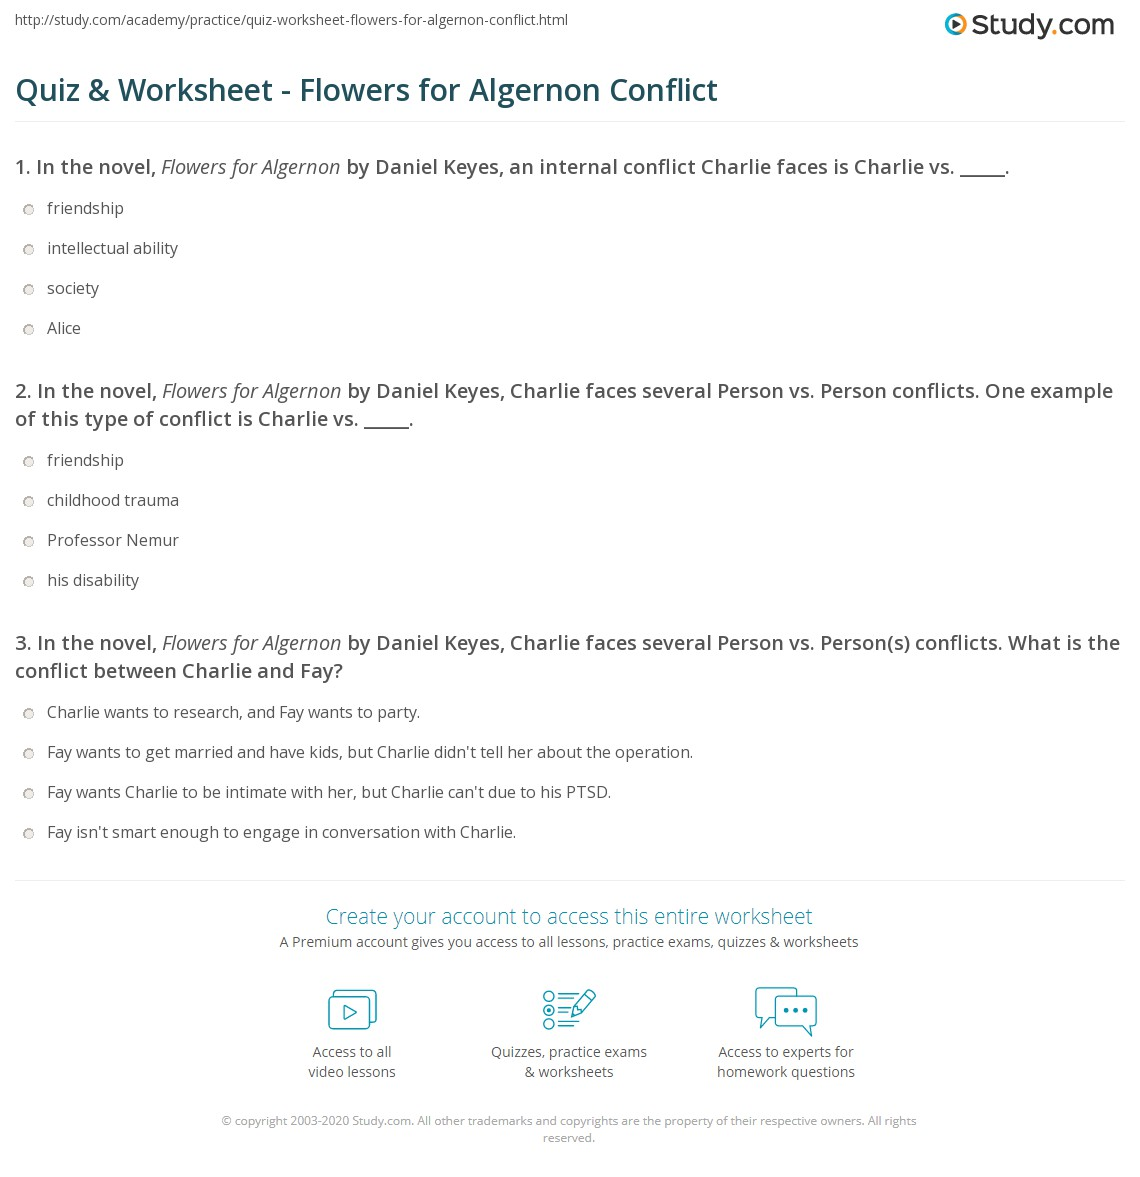 flowers for algernon worksheets the best flowers ideas quiz worksheet flowers for algernon conflict study com